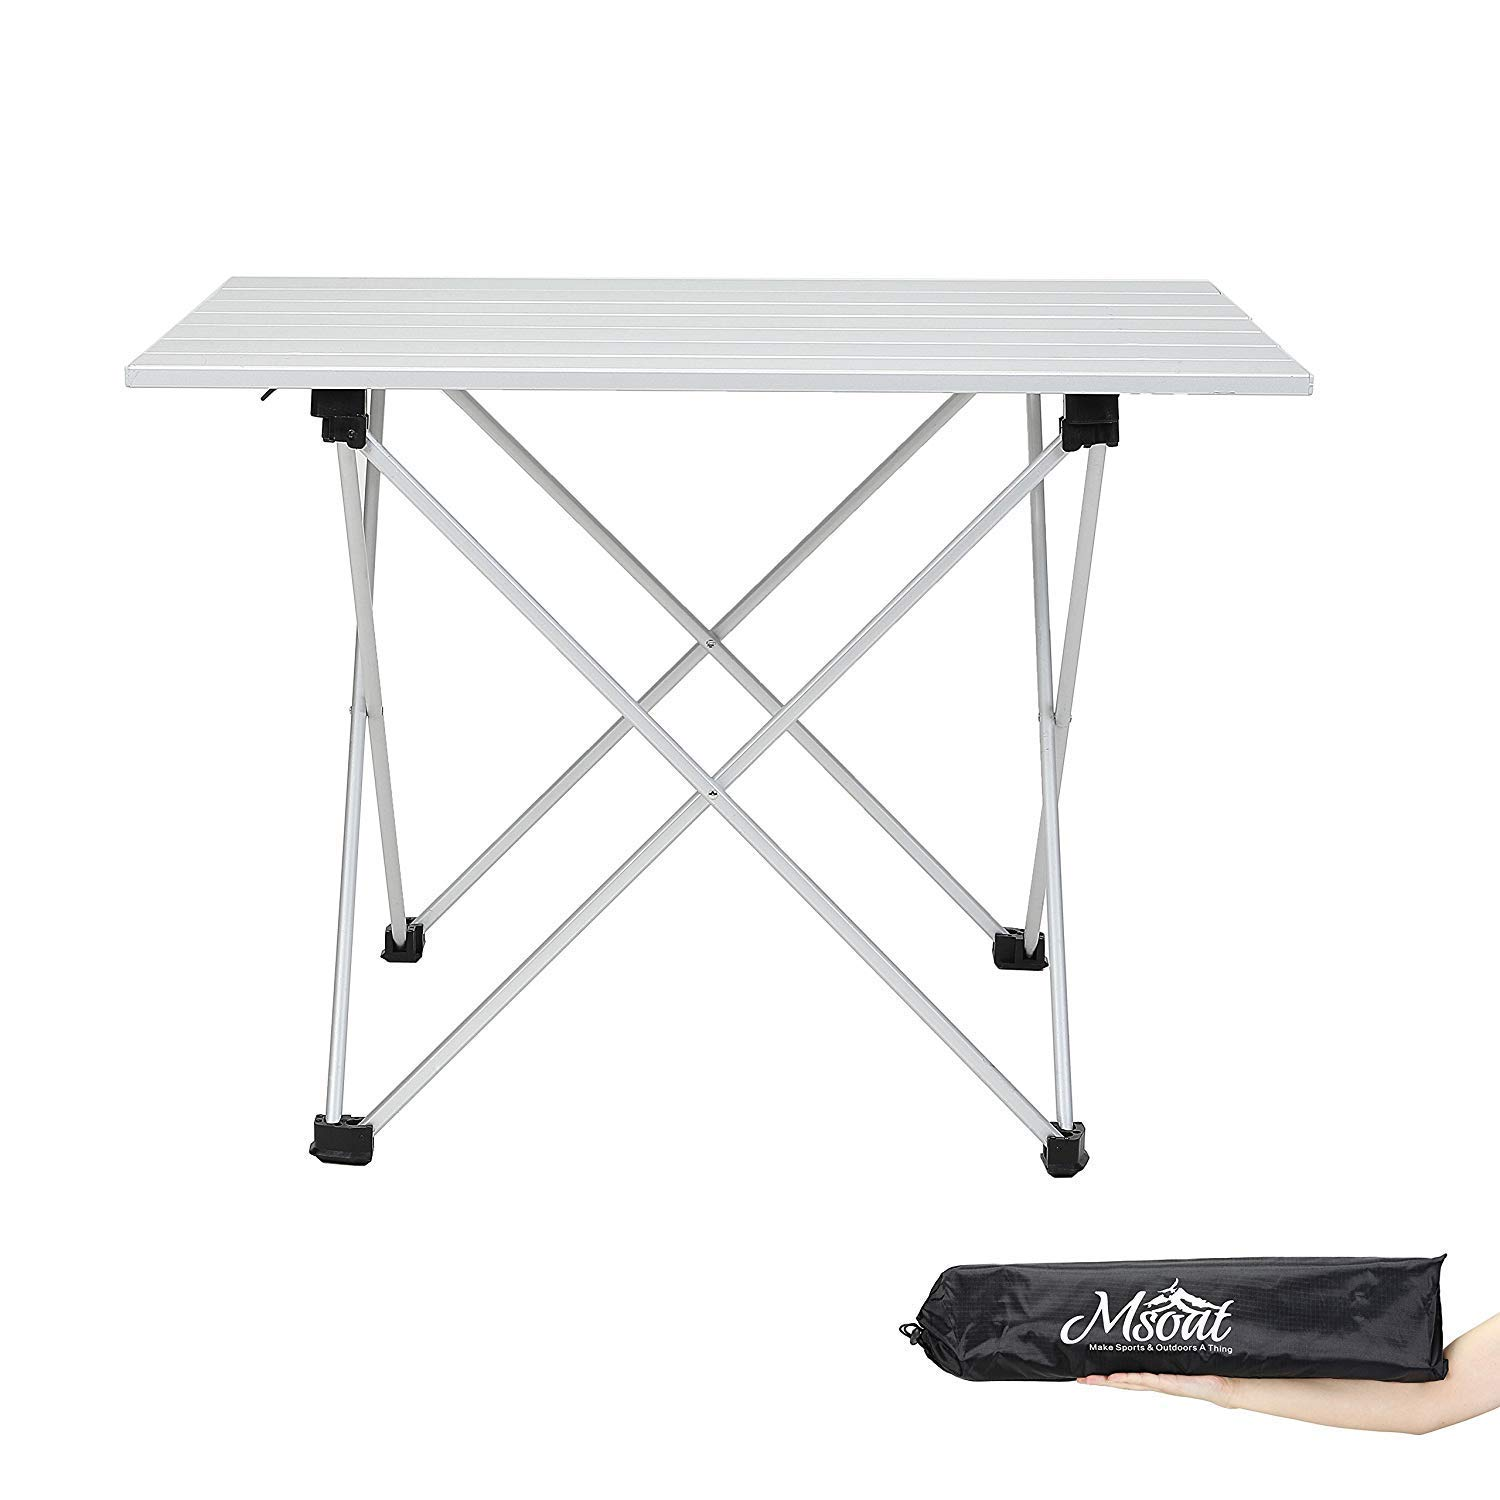 Outdoor Folding Table Folding Camping Collapsible Table Aluminum Foldable Portable Compact Ultralight Roll up Small Medium Large Size for Hiking Travel Outdoor Picnic BBQ Beach Garden,684640Cm